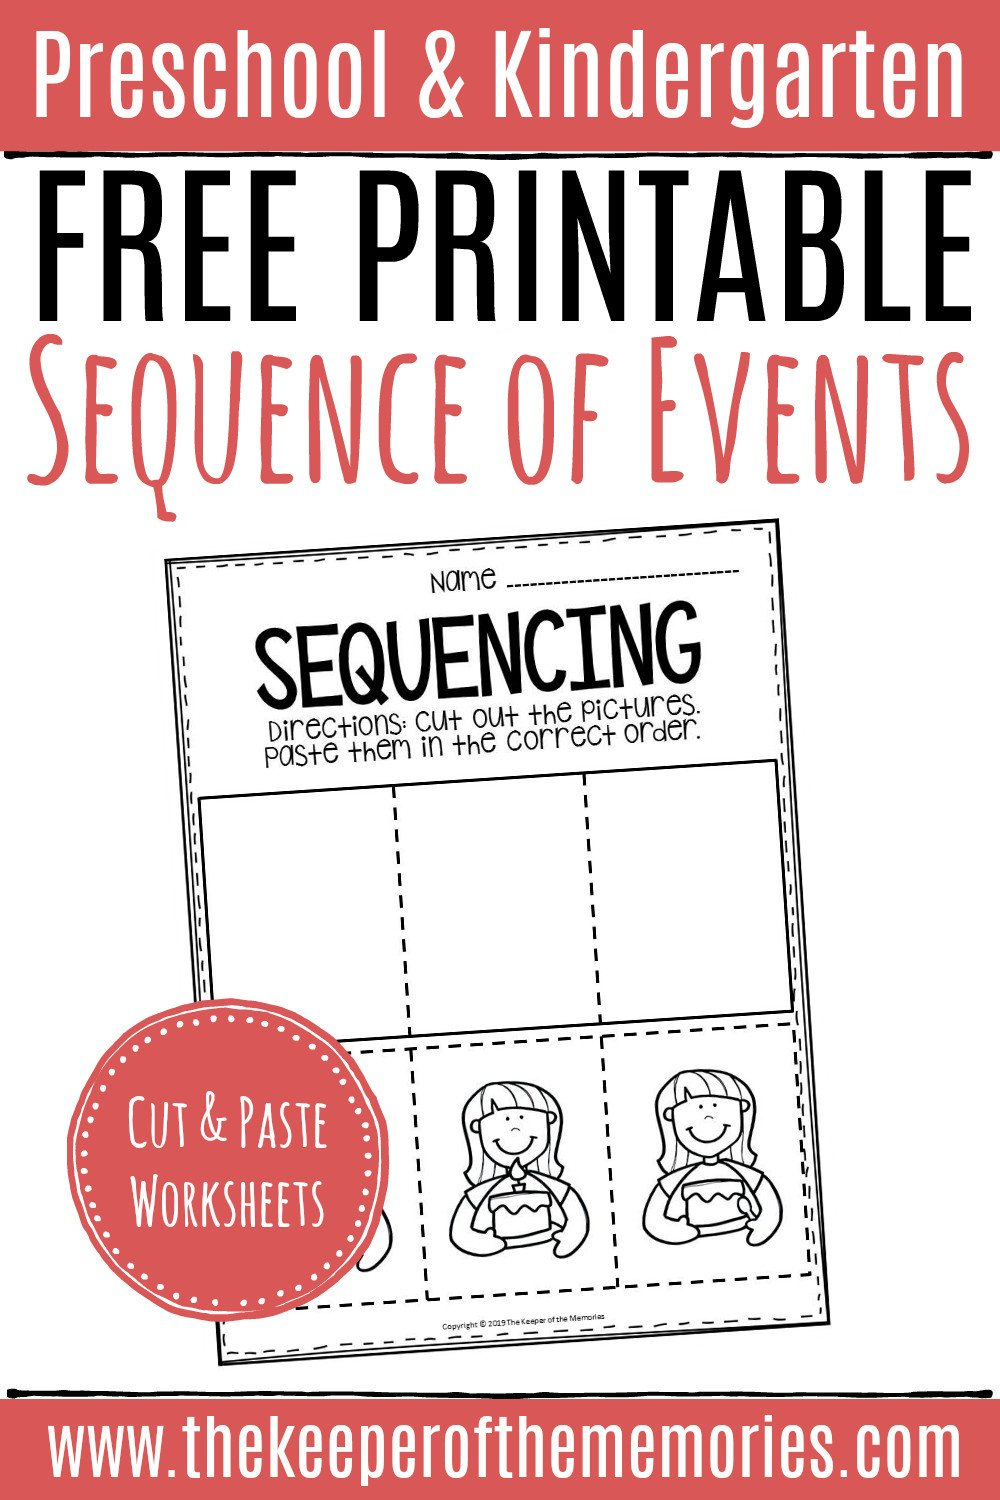 Sequencing Pictures Worksheet Free Printable Sequence Of events Worksheets